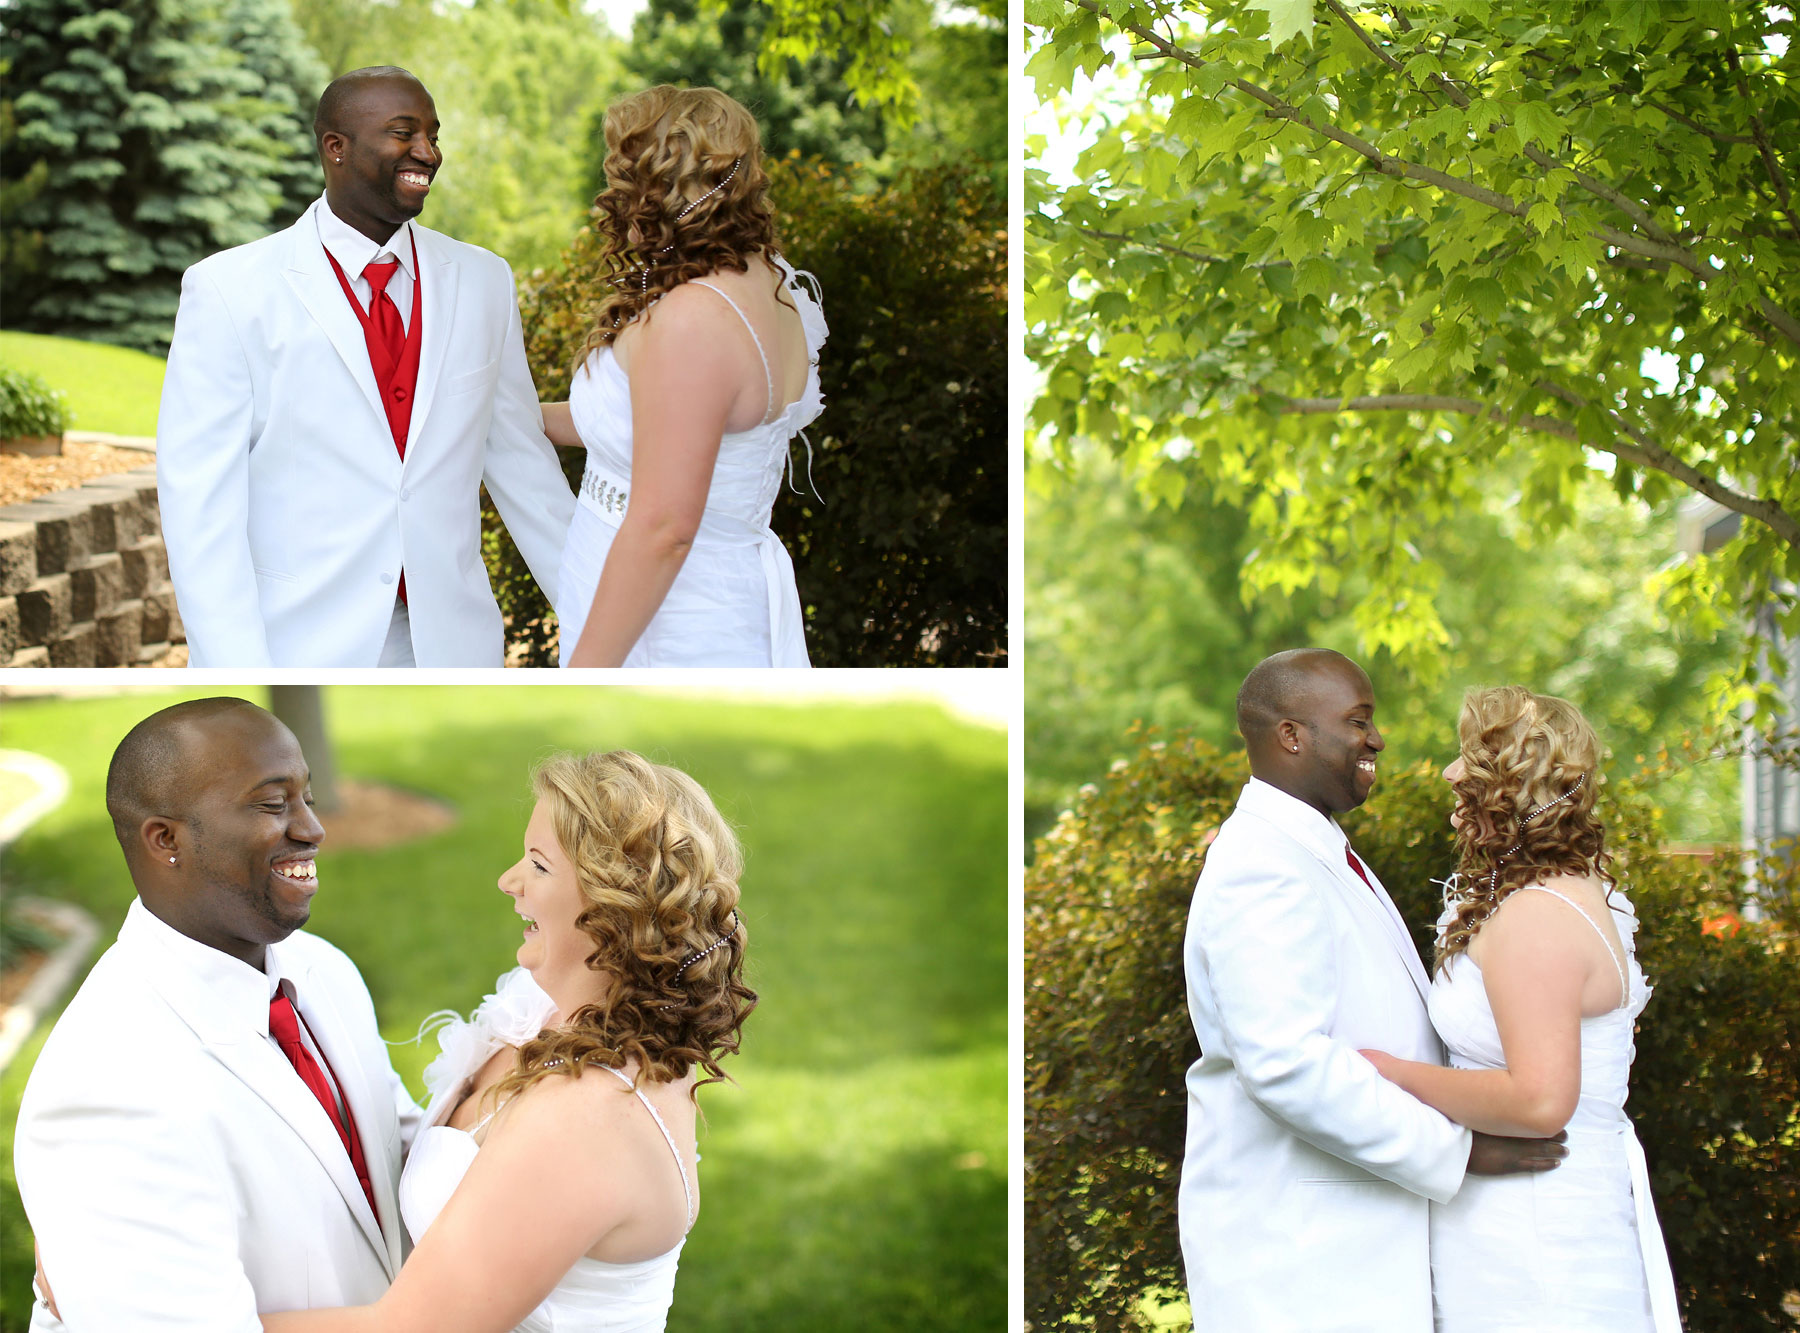 03-Minneapolis-Minnesota-Wedding-Photography-by-Vick-Photography-at-Plymouth-Creek-Center-First-Look-Emily-&-Lonnie.jpg